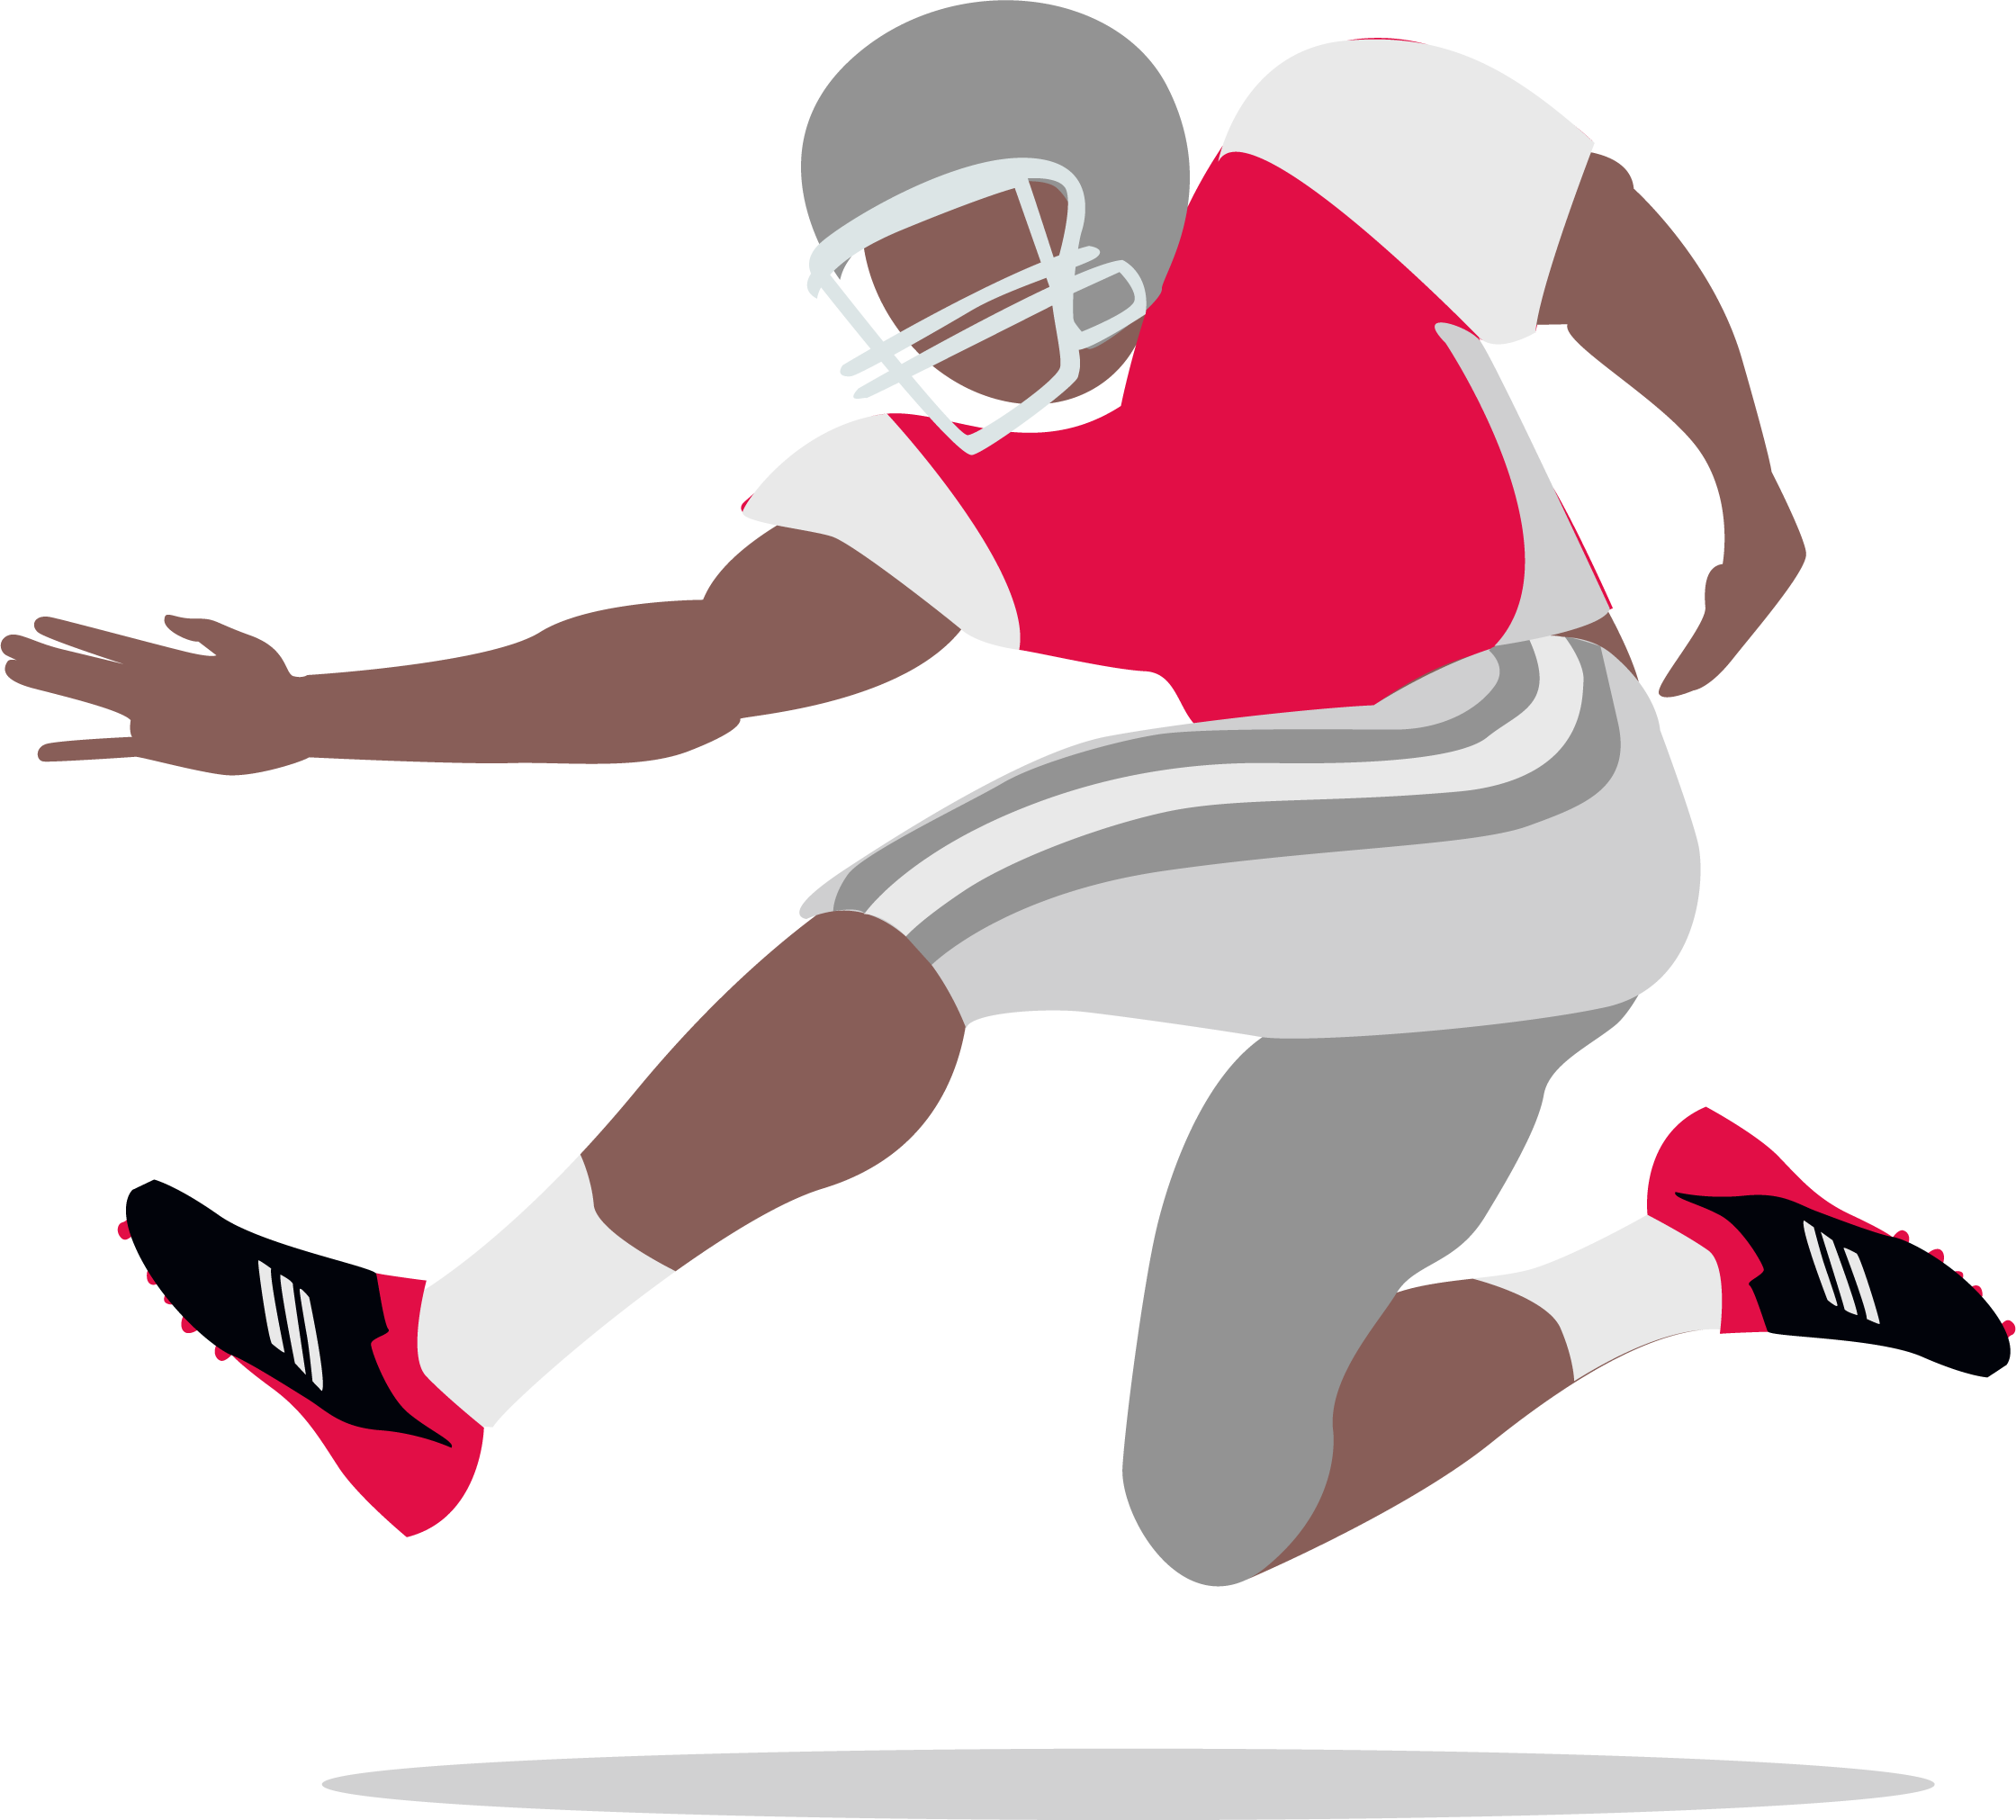 Football player tackling clipart image royalty free The Student Section: OZY's College Football Crash Course | The ... image royalty free